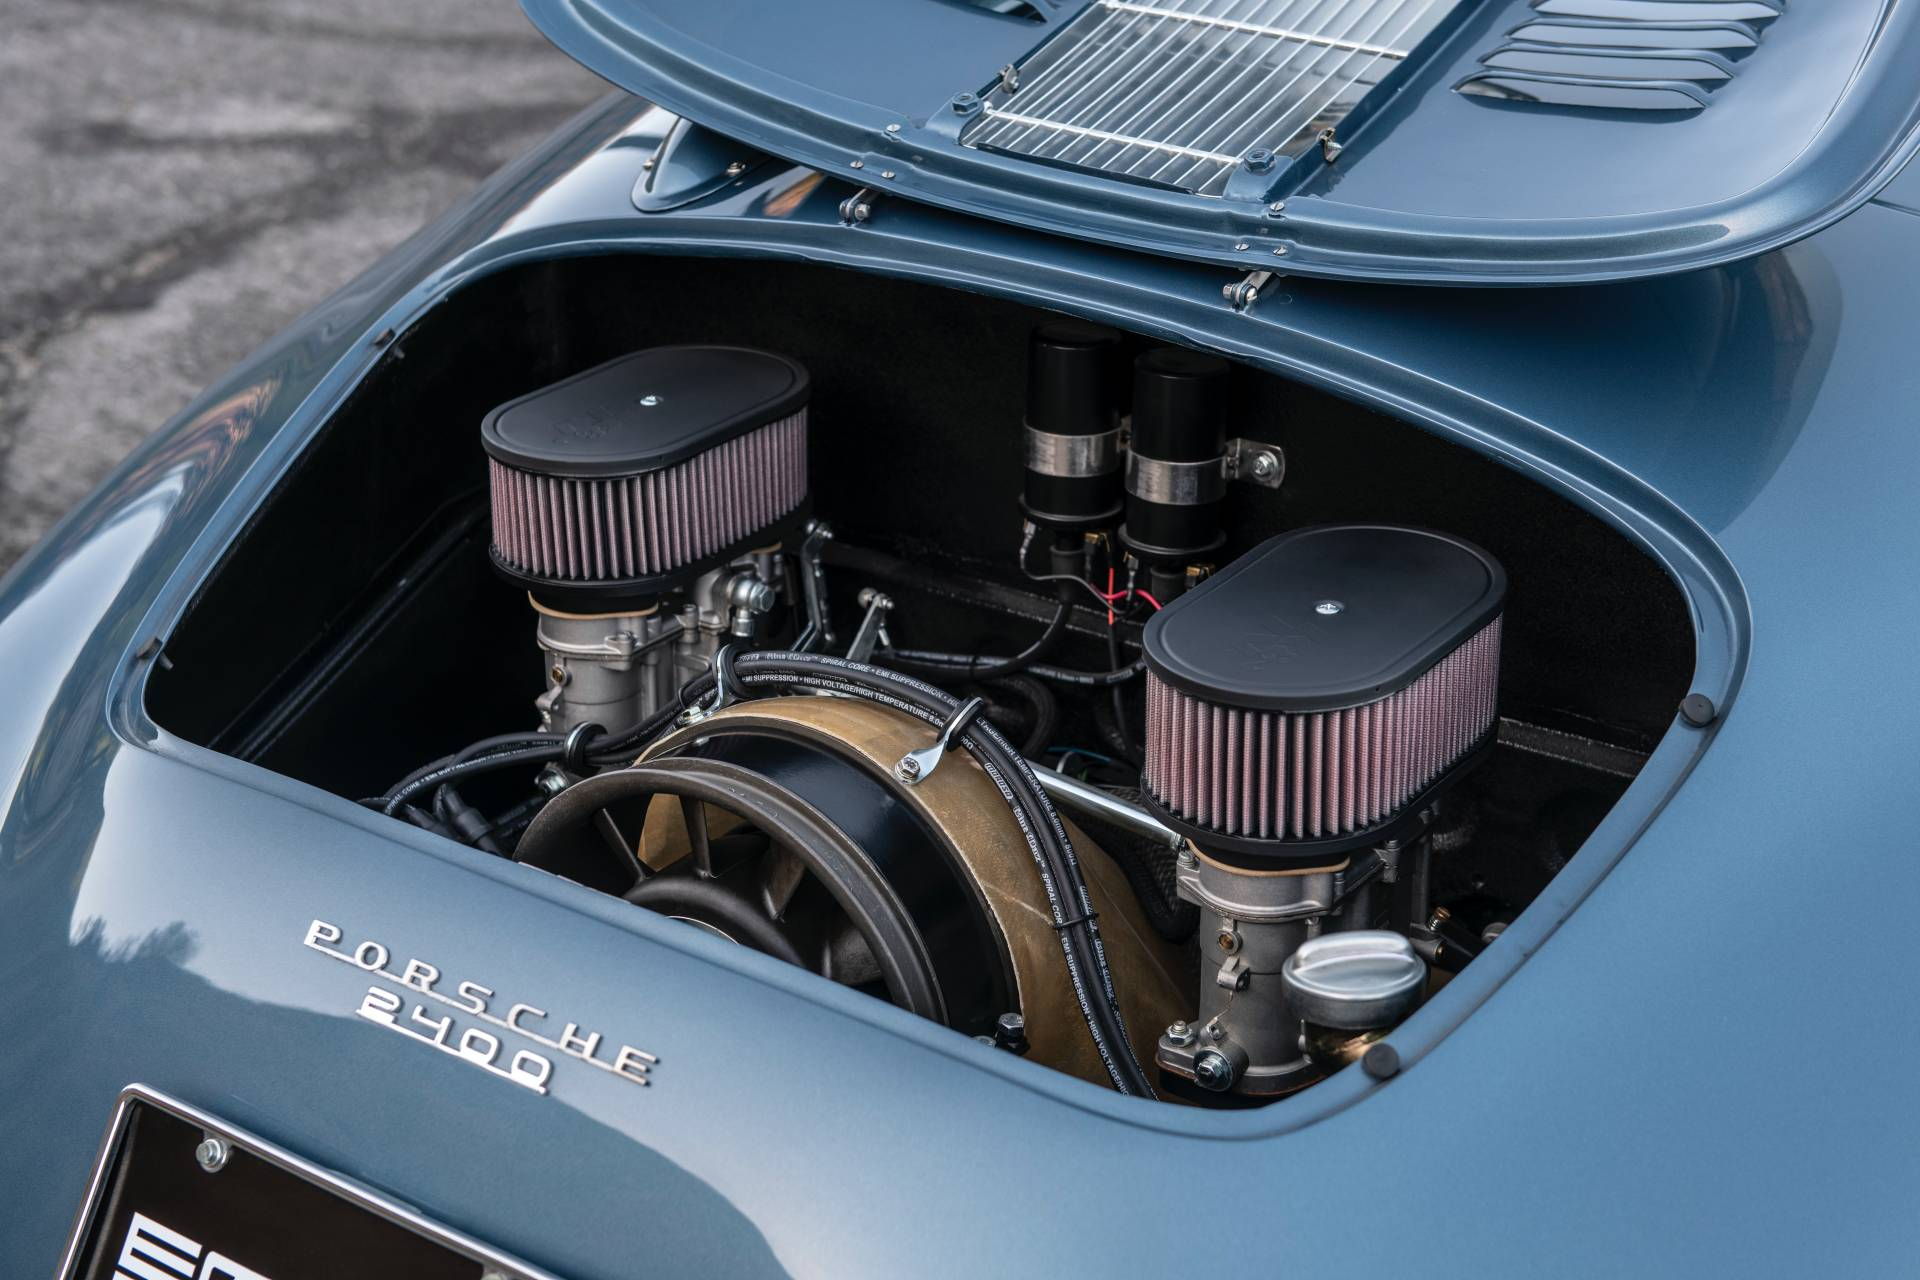 Porsche-356-Speedster-1959-Aquamarine-Transitional-By-Emory-Motorsport-22